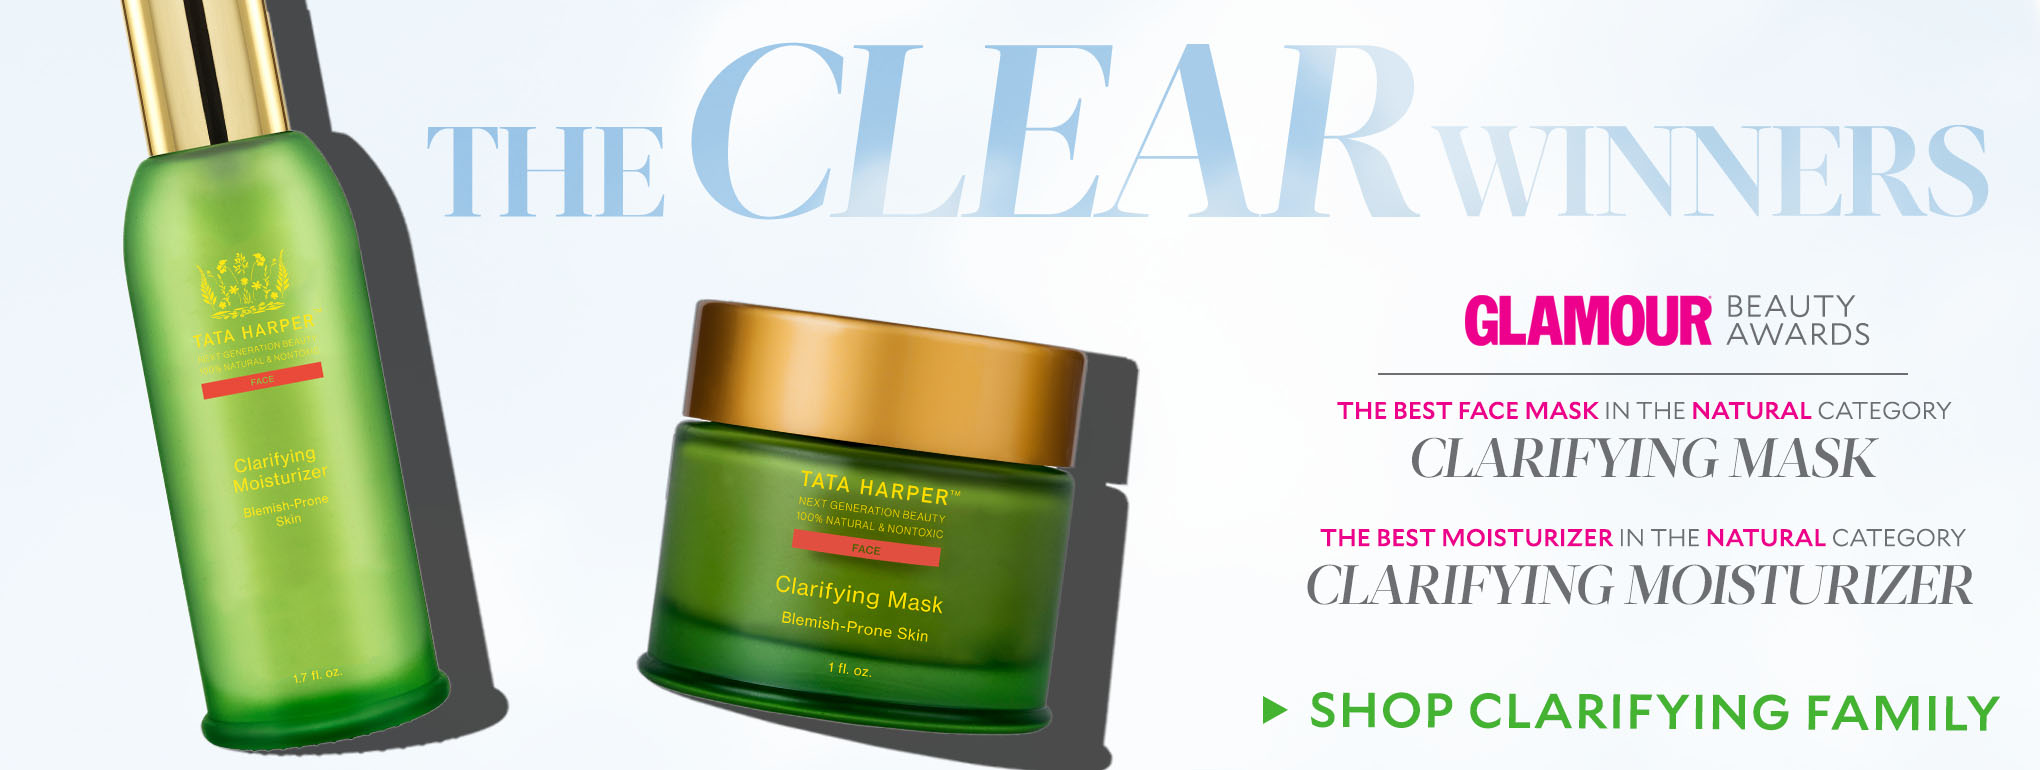 Tata Harper Skincare Clarifying Collection